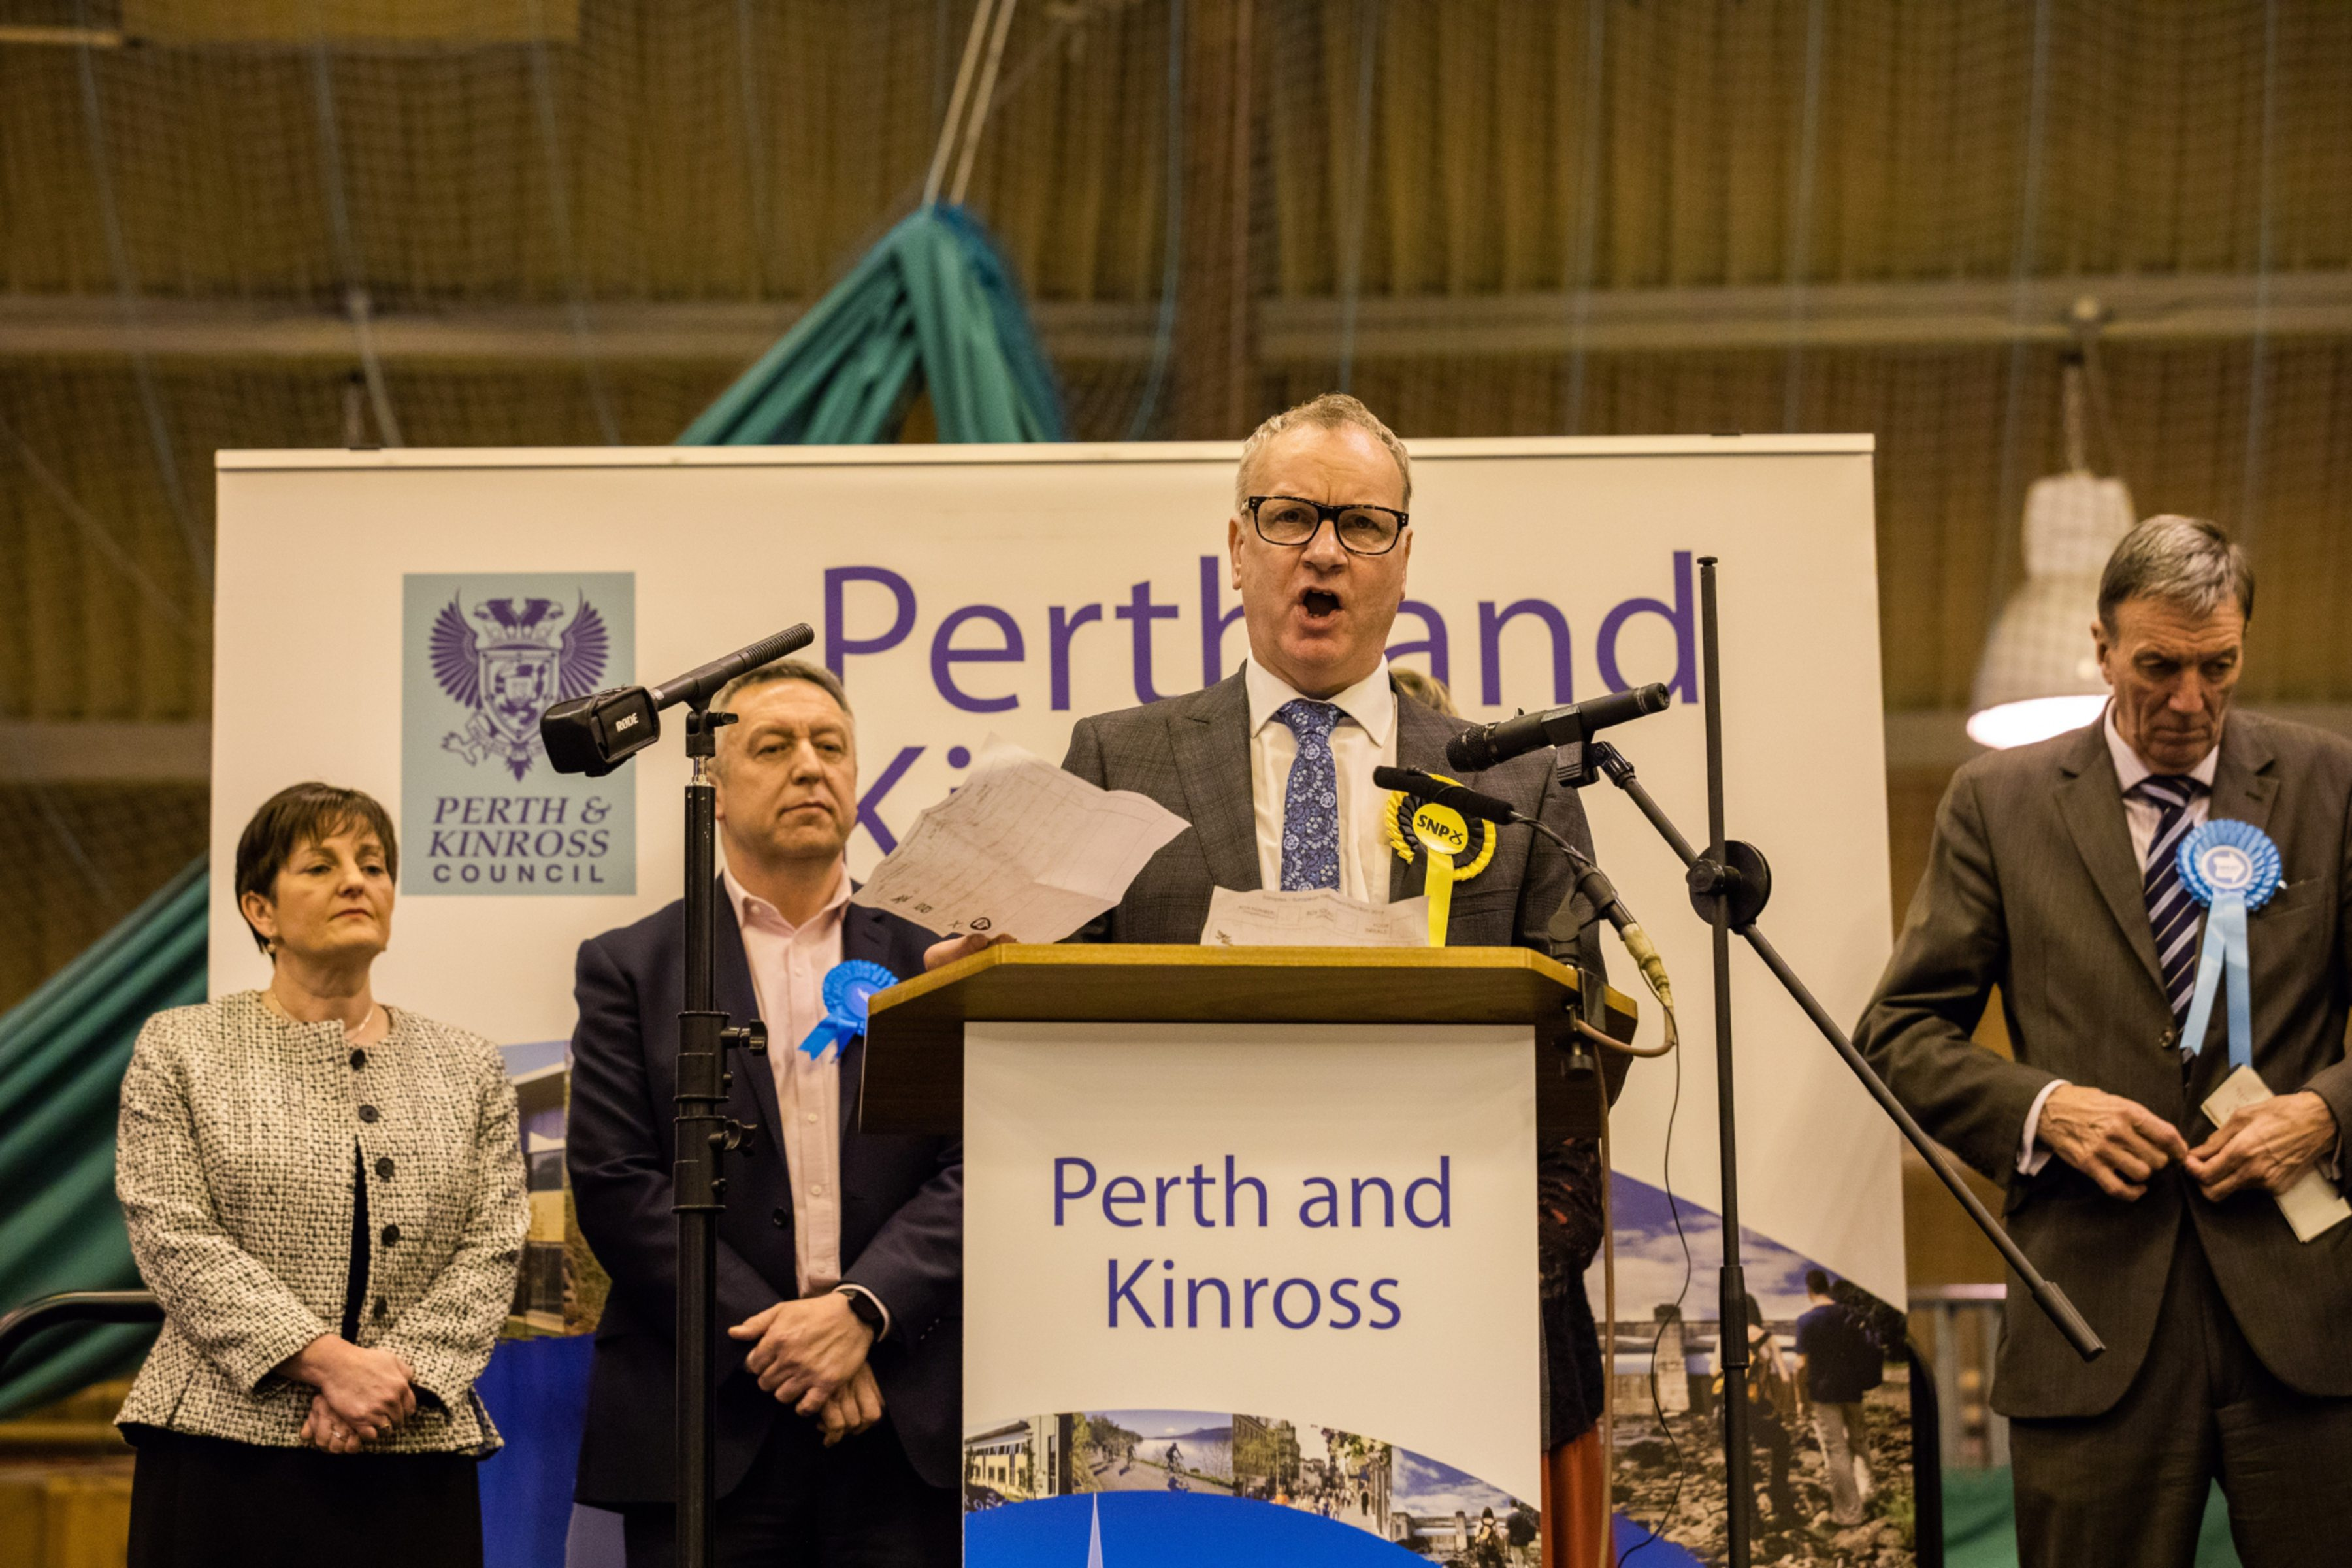 Pete Wishart makes his acceptance speech.